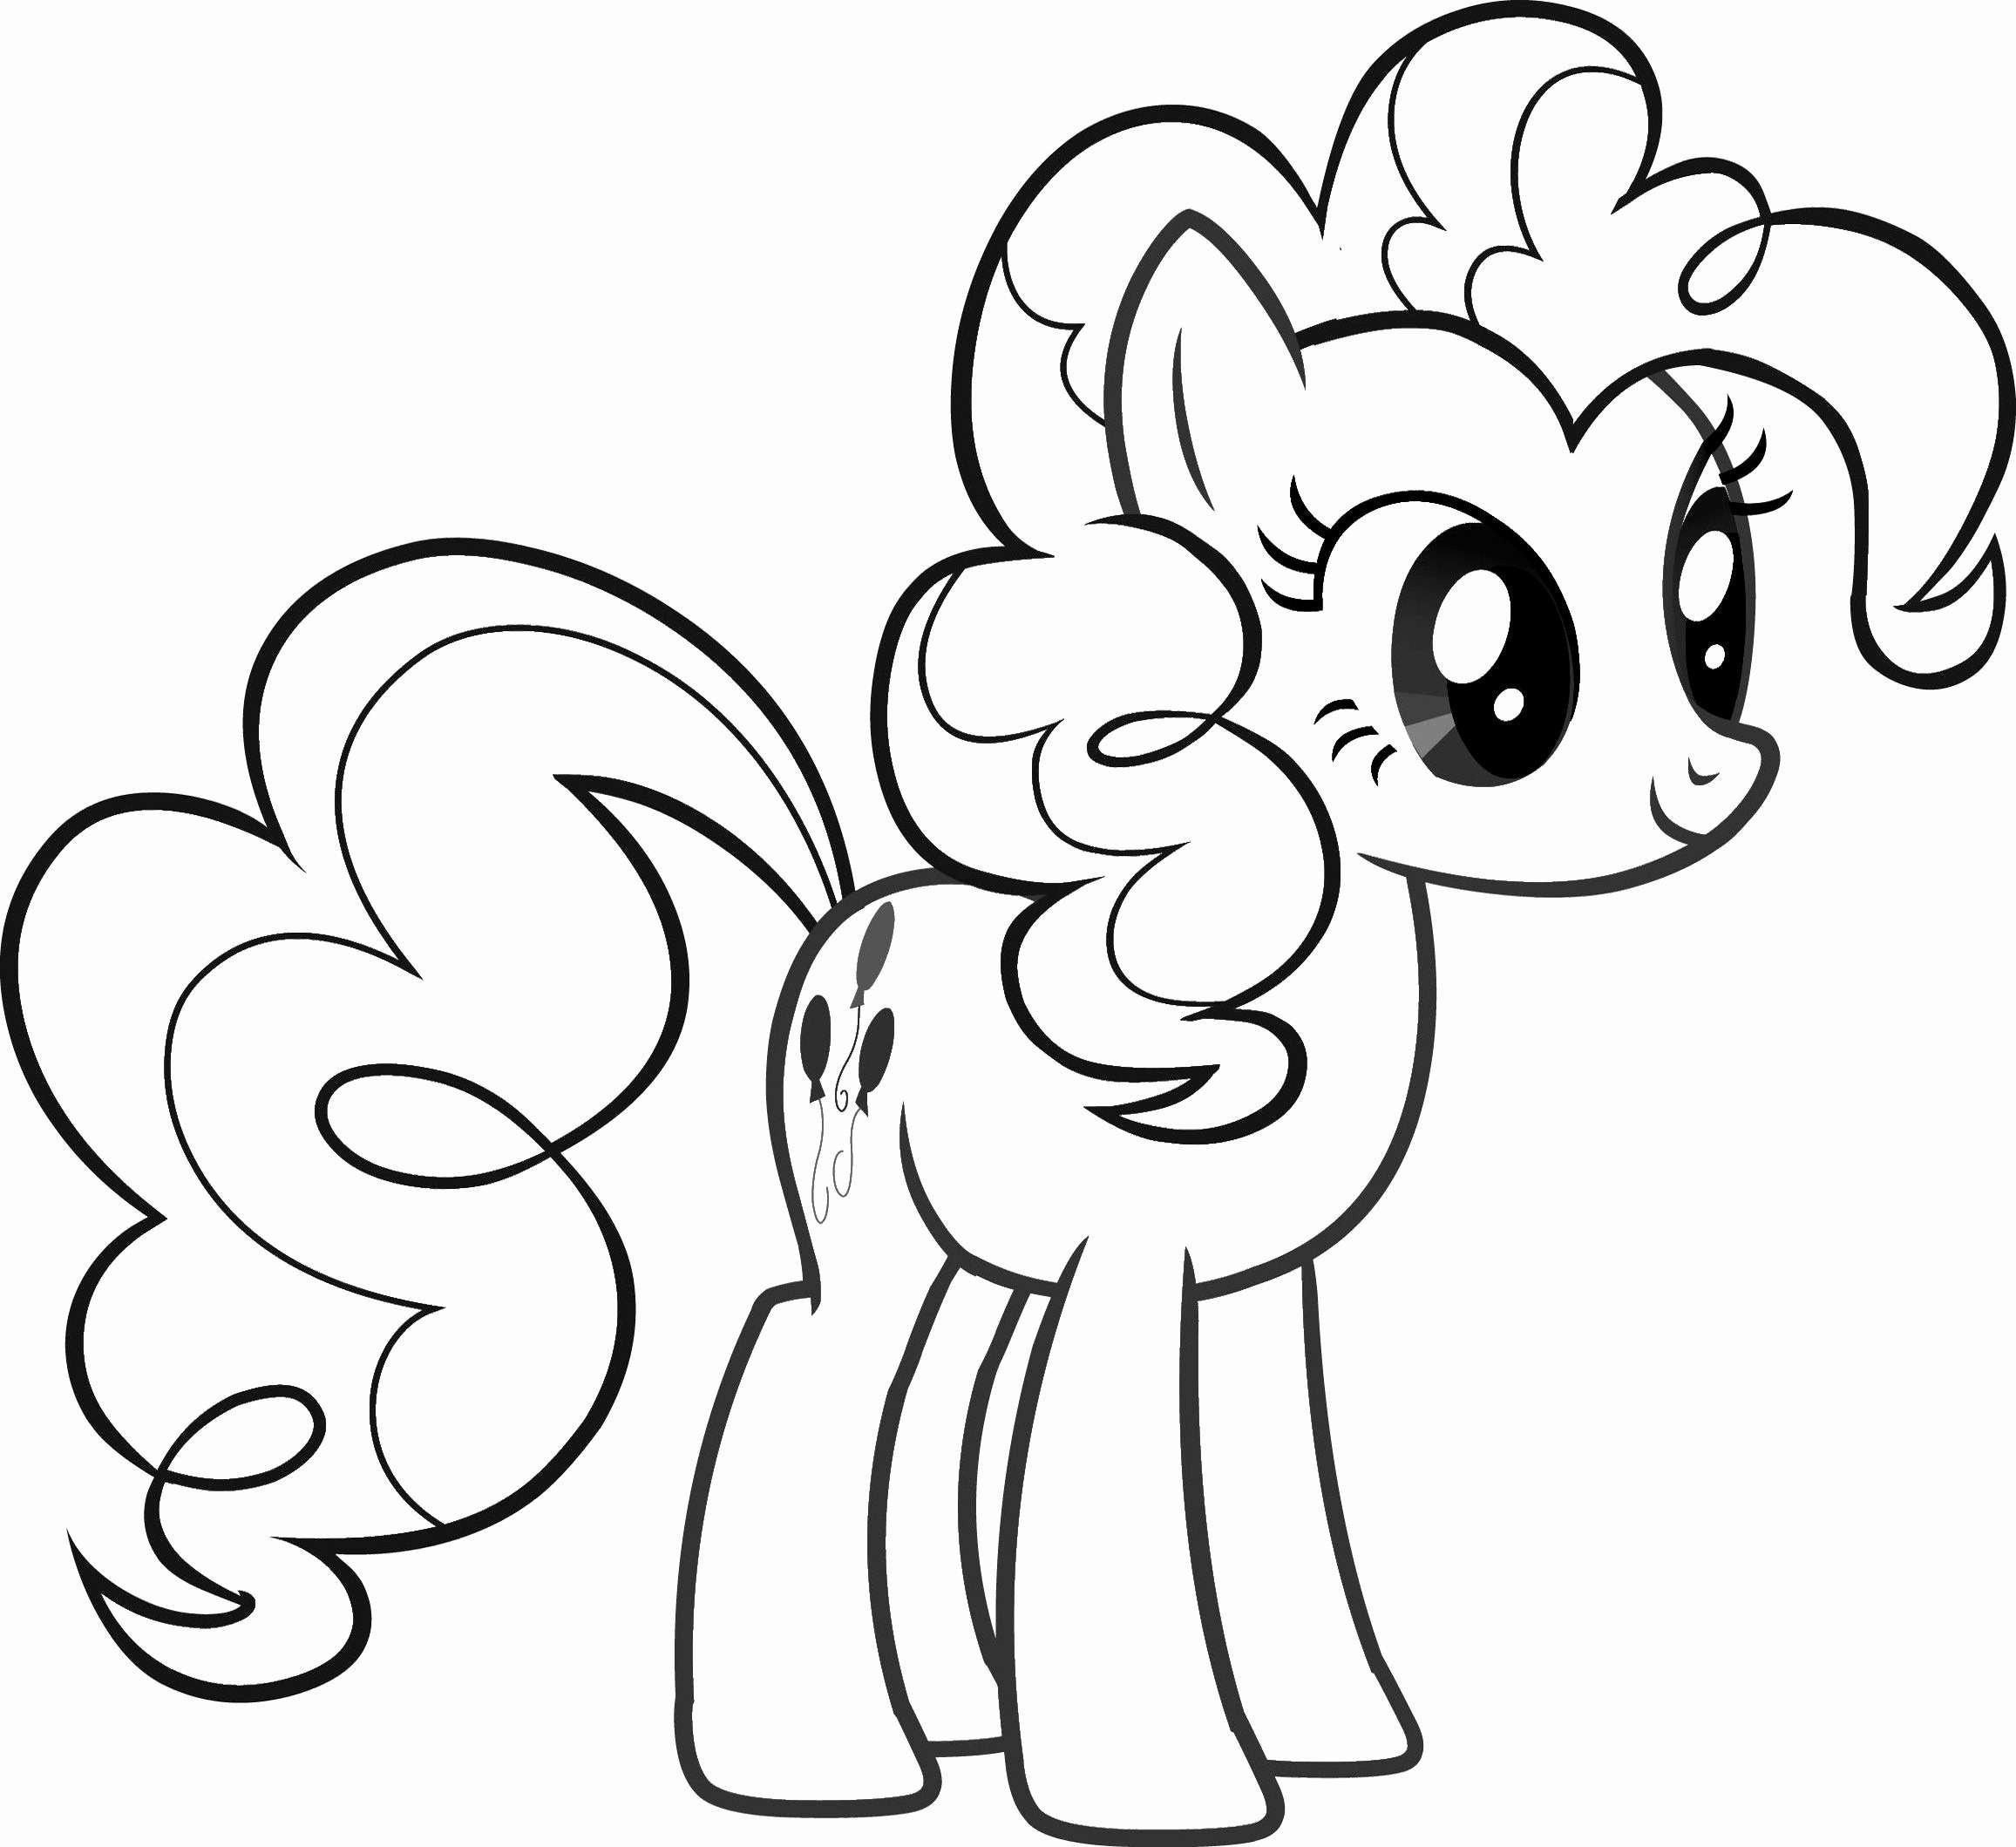 My Little Pony Rainbow Dash Ausmalbilder Inspirierend Mlp Coloring Pages Equestria Girls Printable My Little Pony Best Fotos